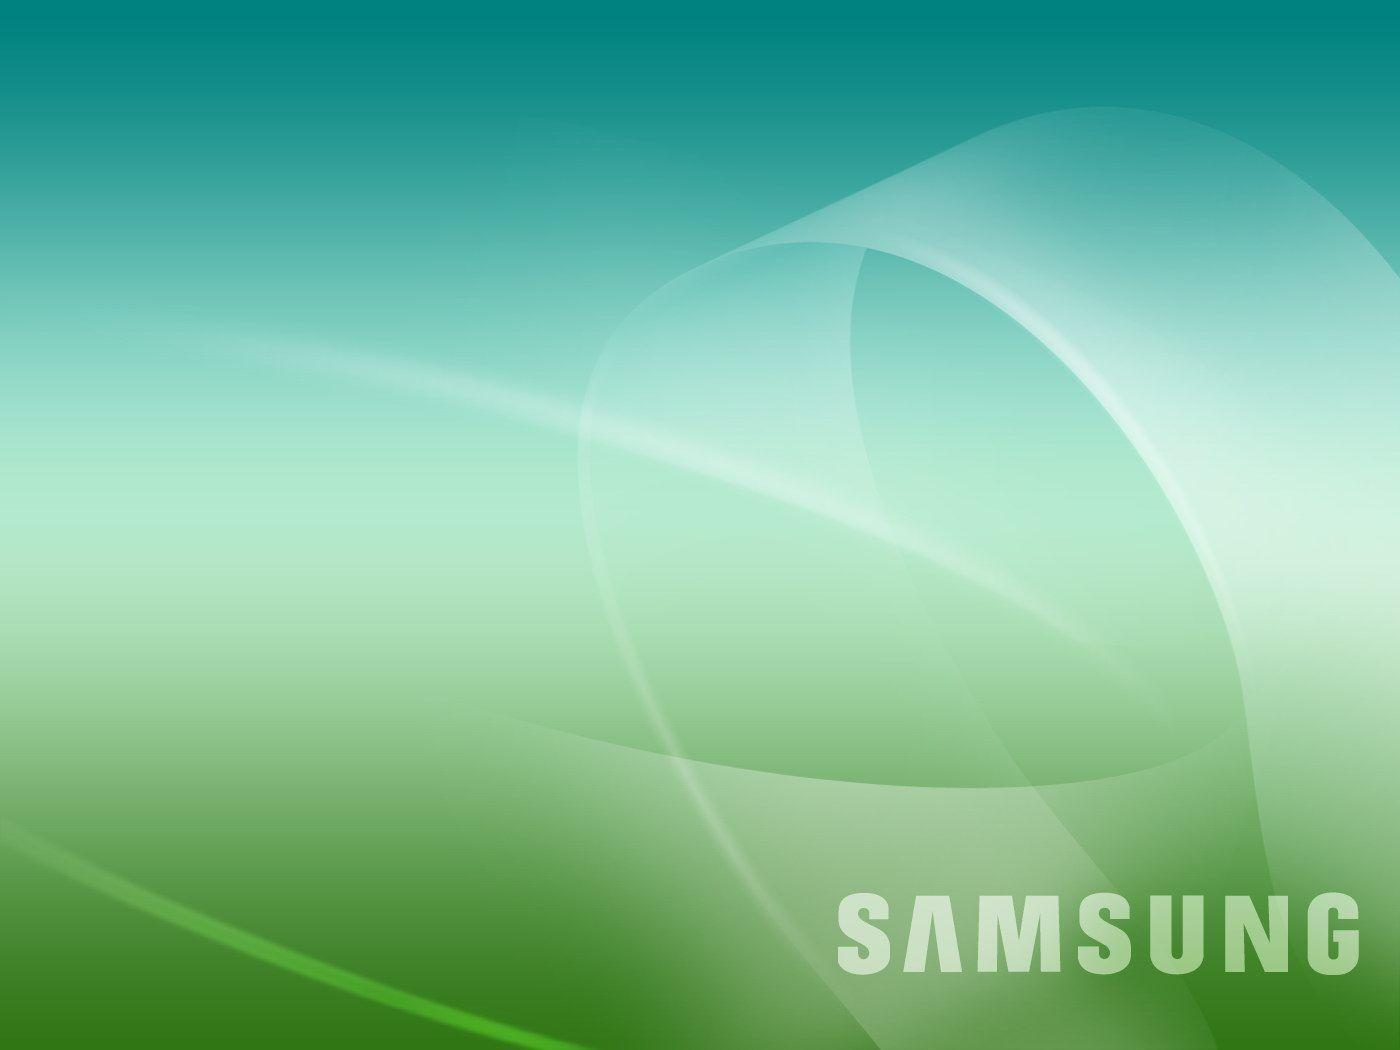 Samsung Wallpapers Gallery